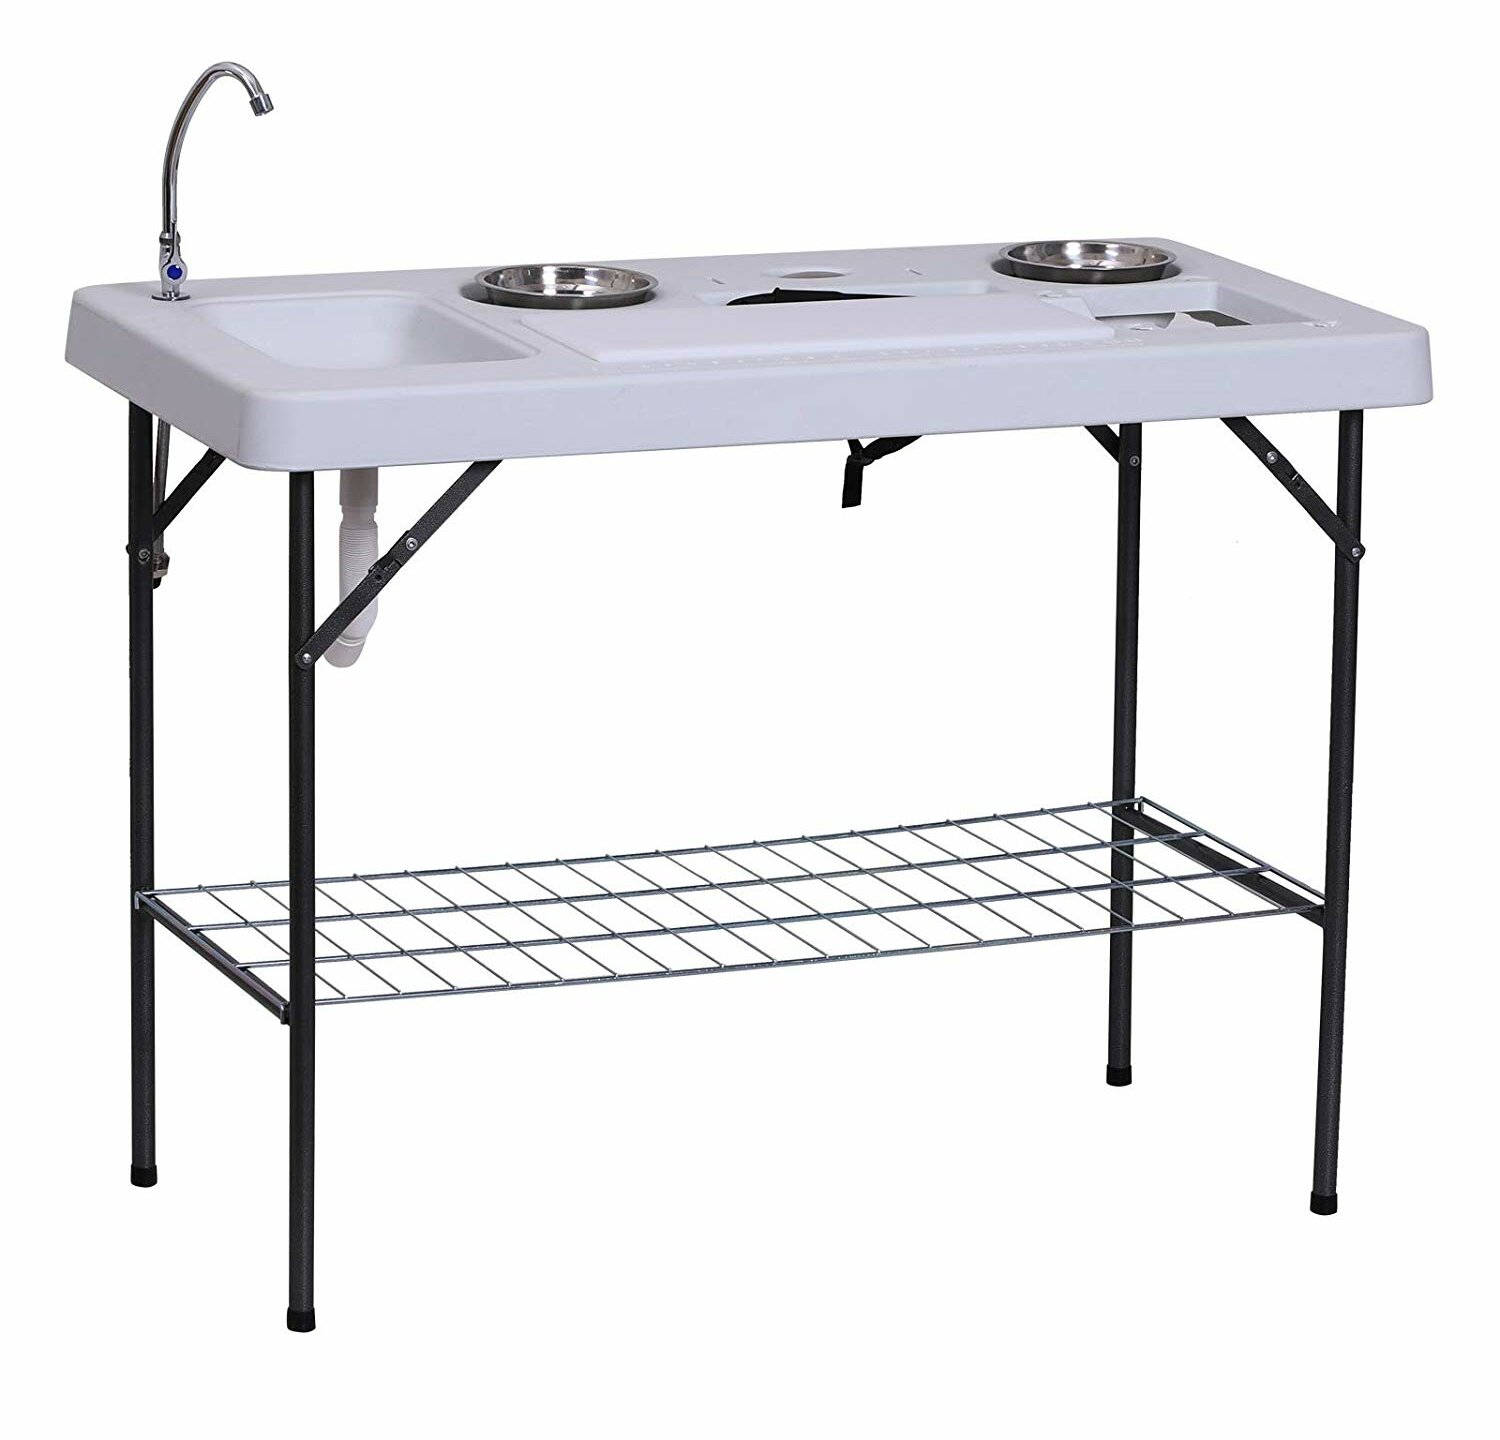 Folding Fish Cleaning Table Free Standing Sink